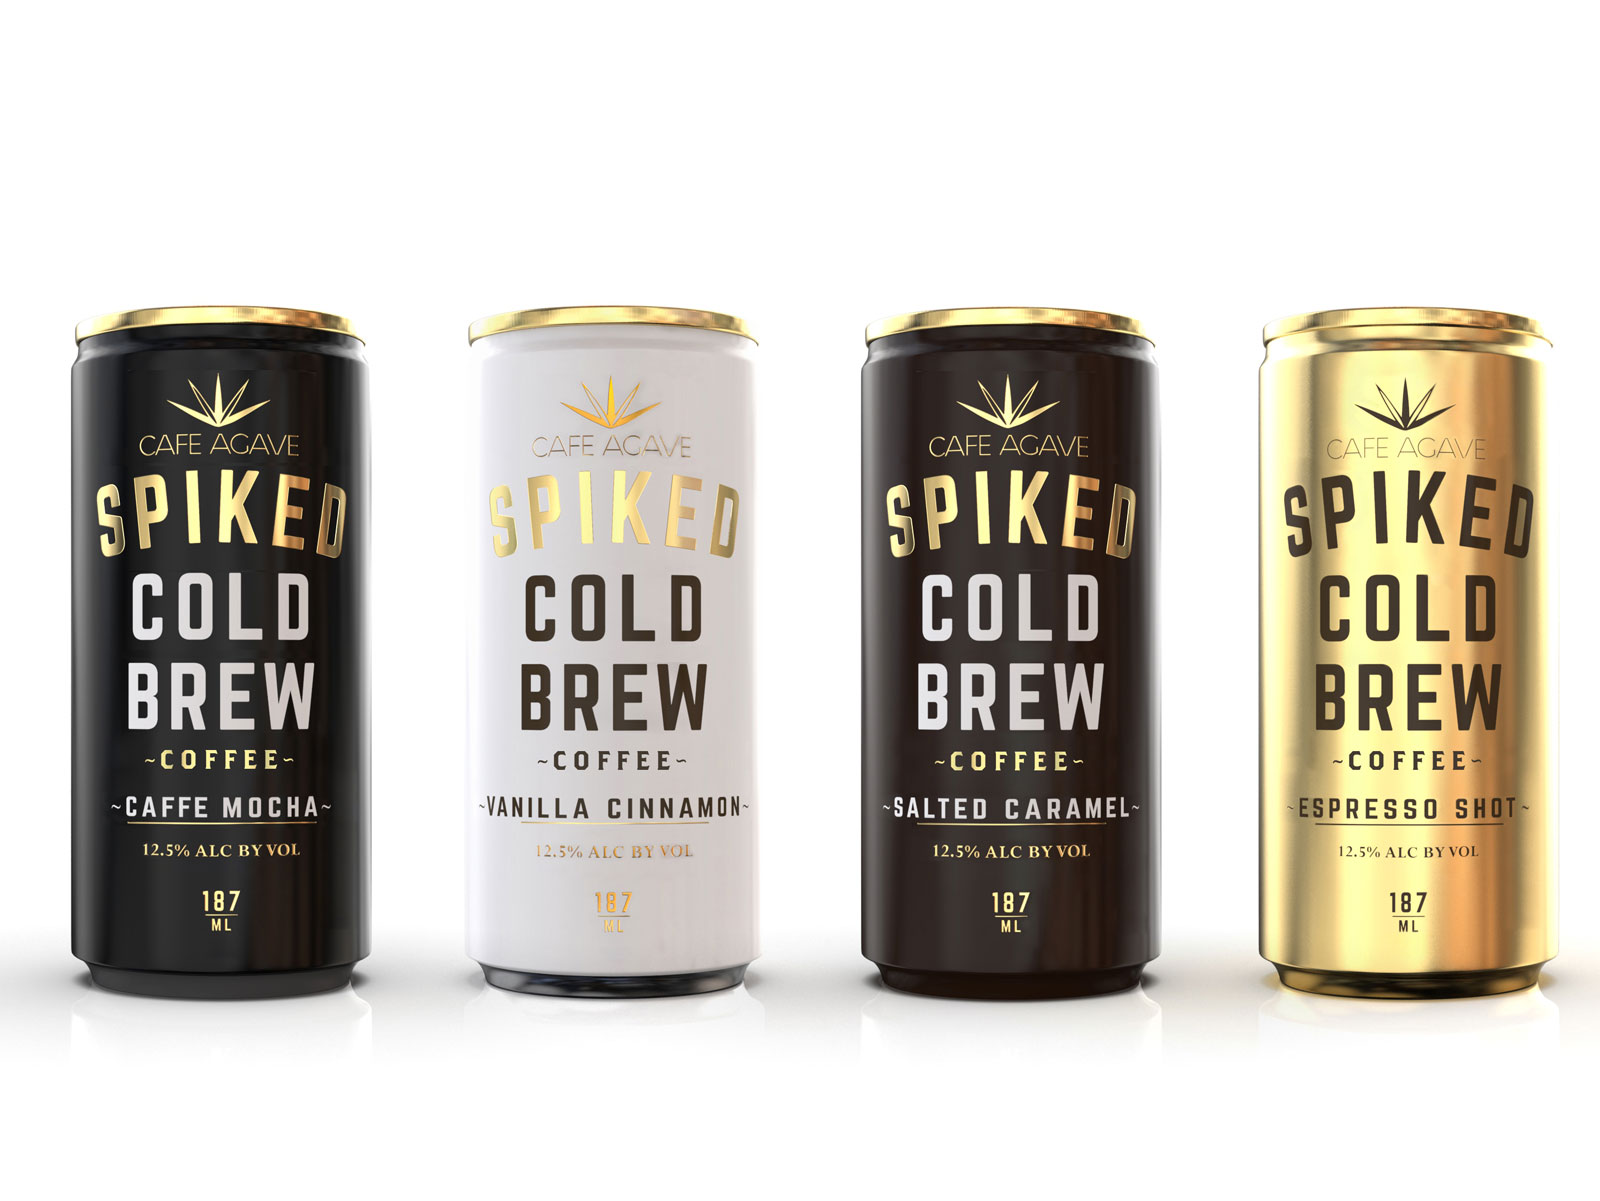 Spiked Cold Brew